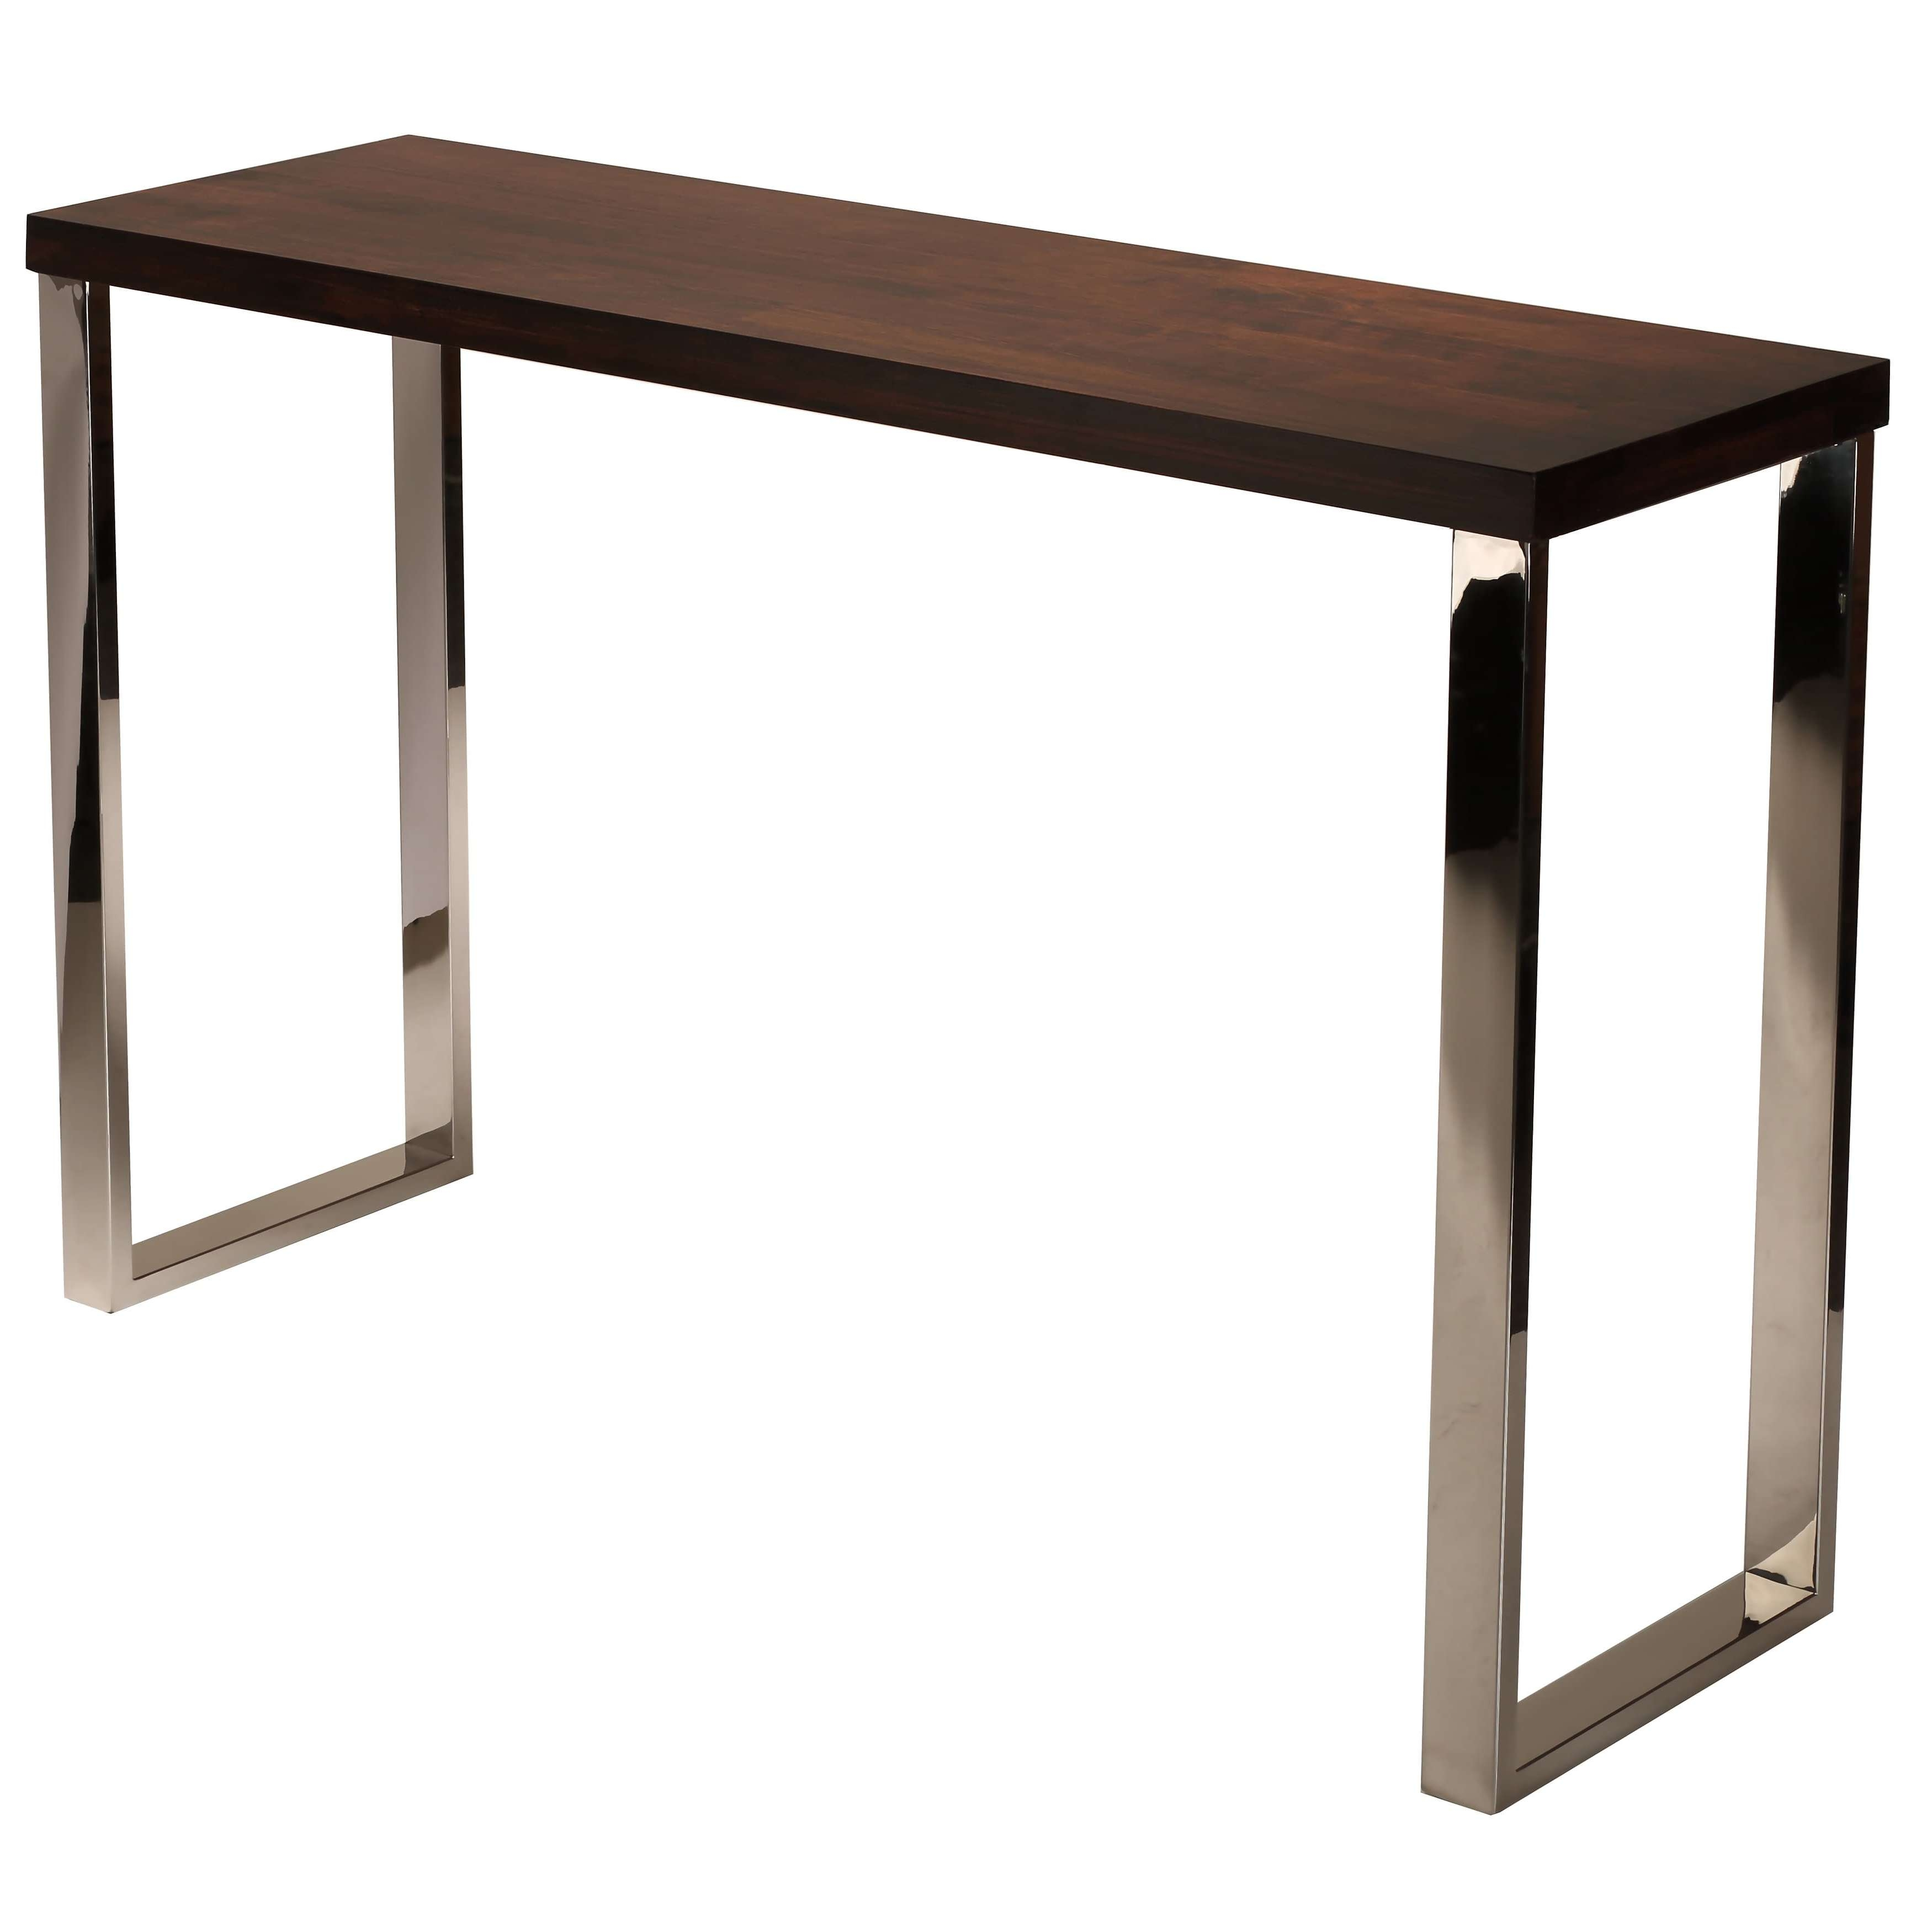 Cortesi Home Achille Contemporary Console Table With Chrome Legs With Well Liked Coffee Tables With Chrome Legs (View 4 of 20)